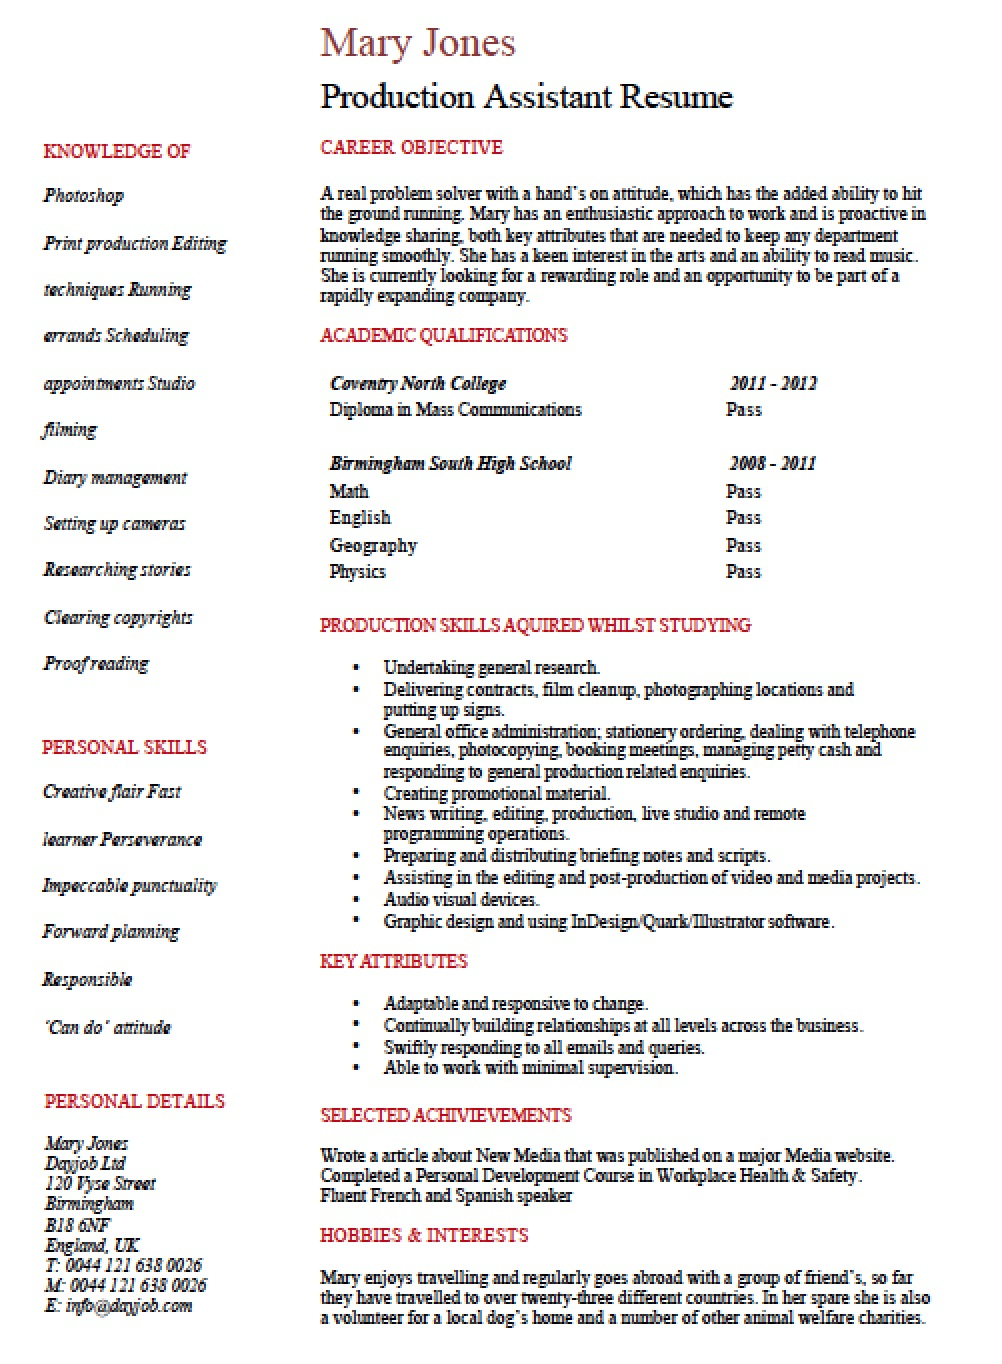 entry level production assistant resume template templates designated survivor shadowing Resume Entry Level Production Resume